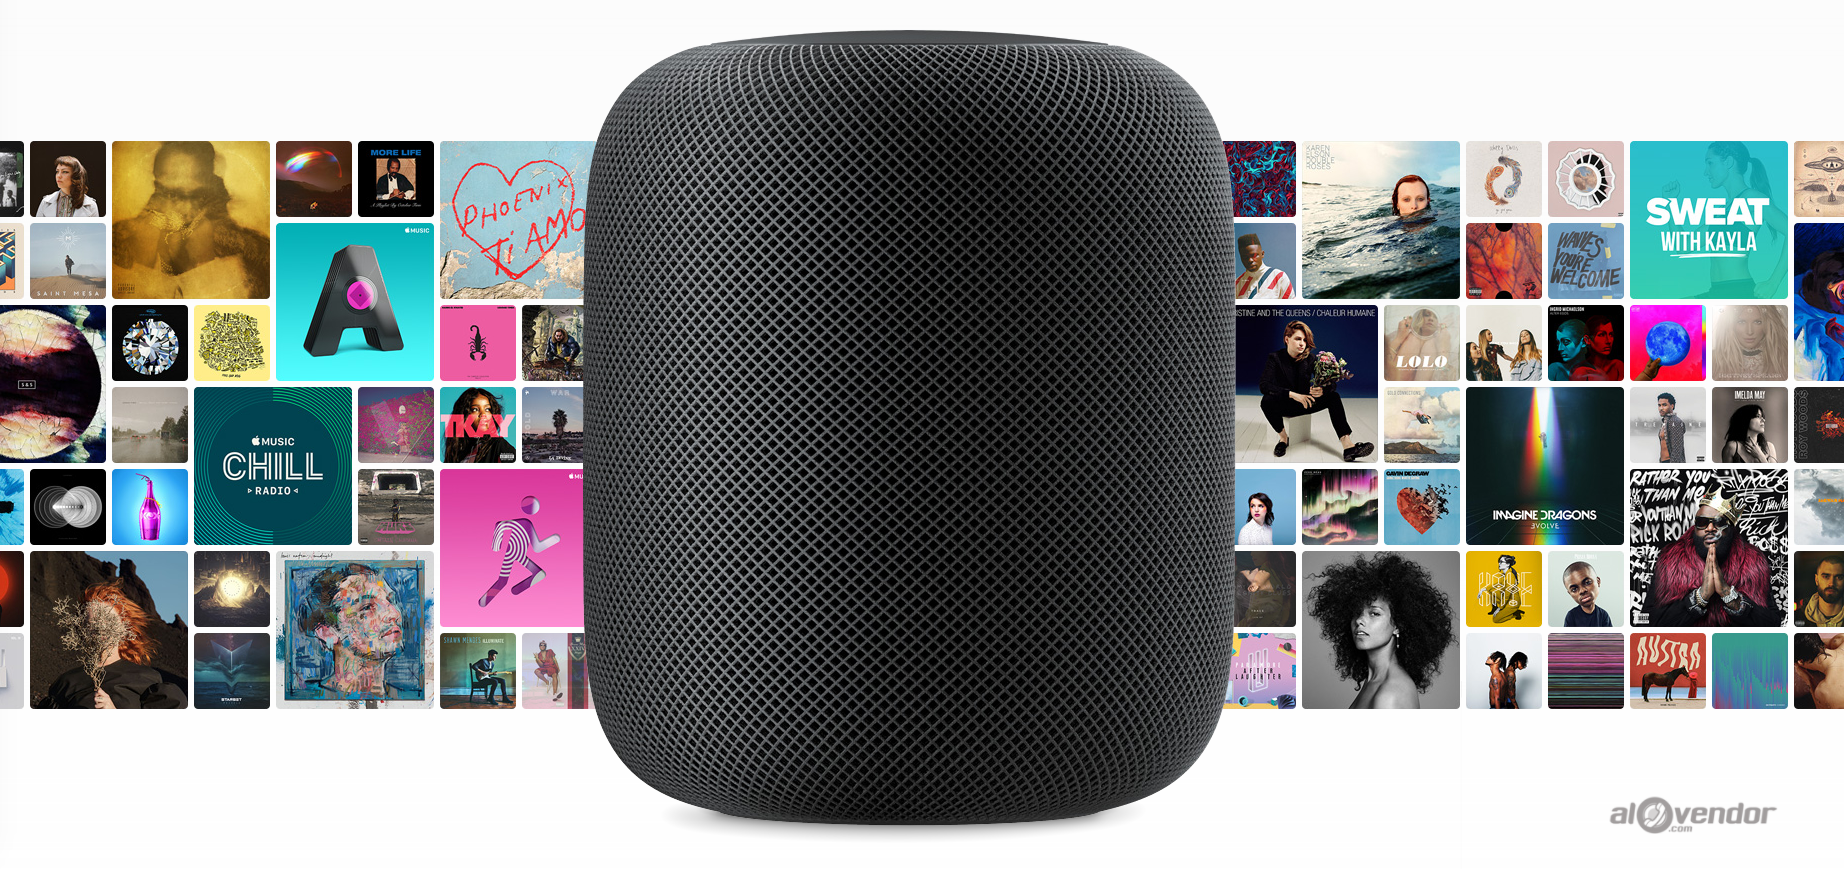 Apple launched super smart speaker HomePod